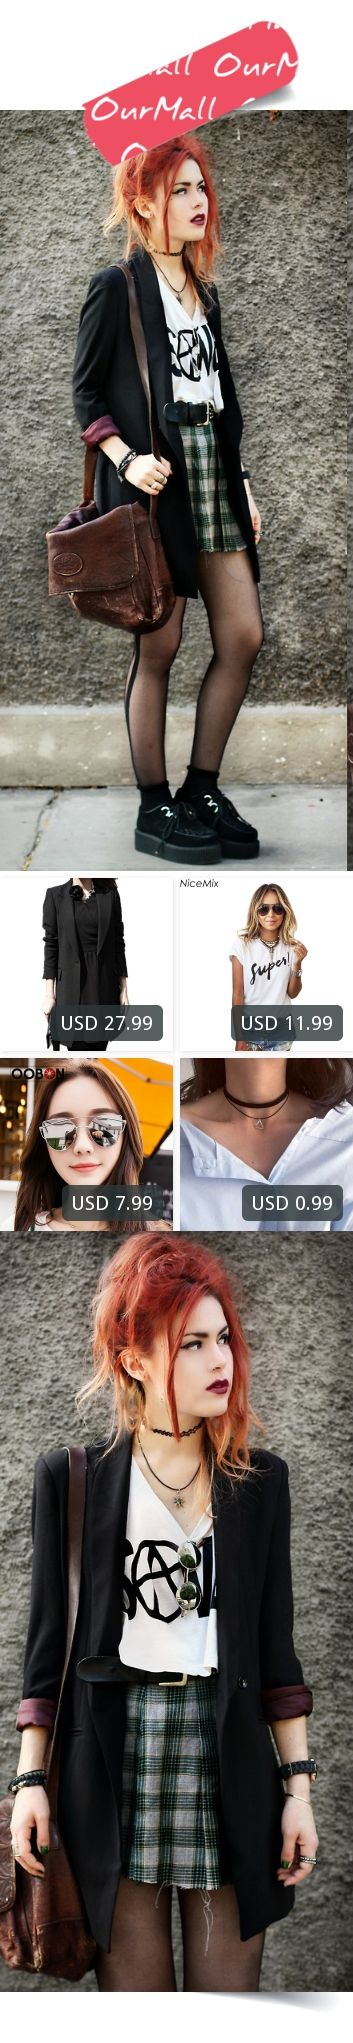 This is Lua P's buyer show in OurMall;  1.Black Jackets Women Breasted Slim Female Long Jacket Coat Chaquetas Mujer Jaqueta 2.New 2017 Summer Women T-shirt Print Super T Shirt White Cotton Letter 3.vintage Mirror female Women Cat Eye Sunglasses Brand Designer Twin-Beam... please click the picture for detail. http://ourmall.com/?7zy2In  #coat #windbreaker #longcoat #springcoat #girlscoat #coatforwomen #femalecoat #trenchcoat #capecoat #rackcoat #womencoat